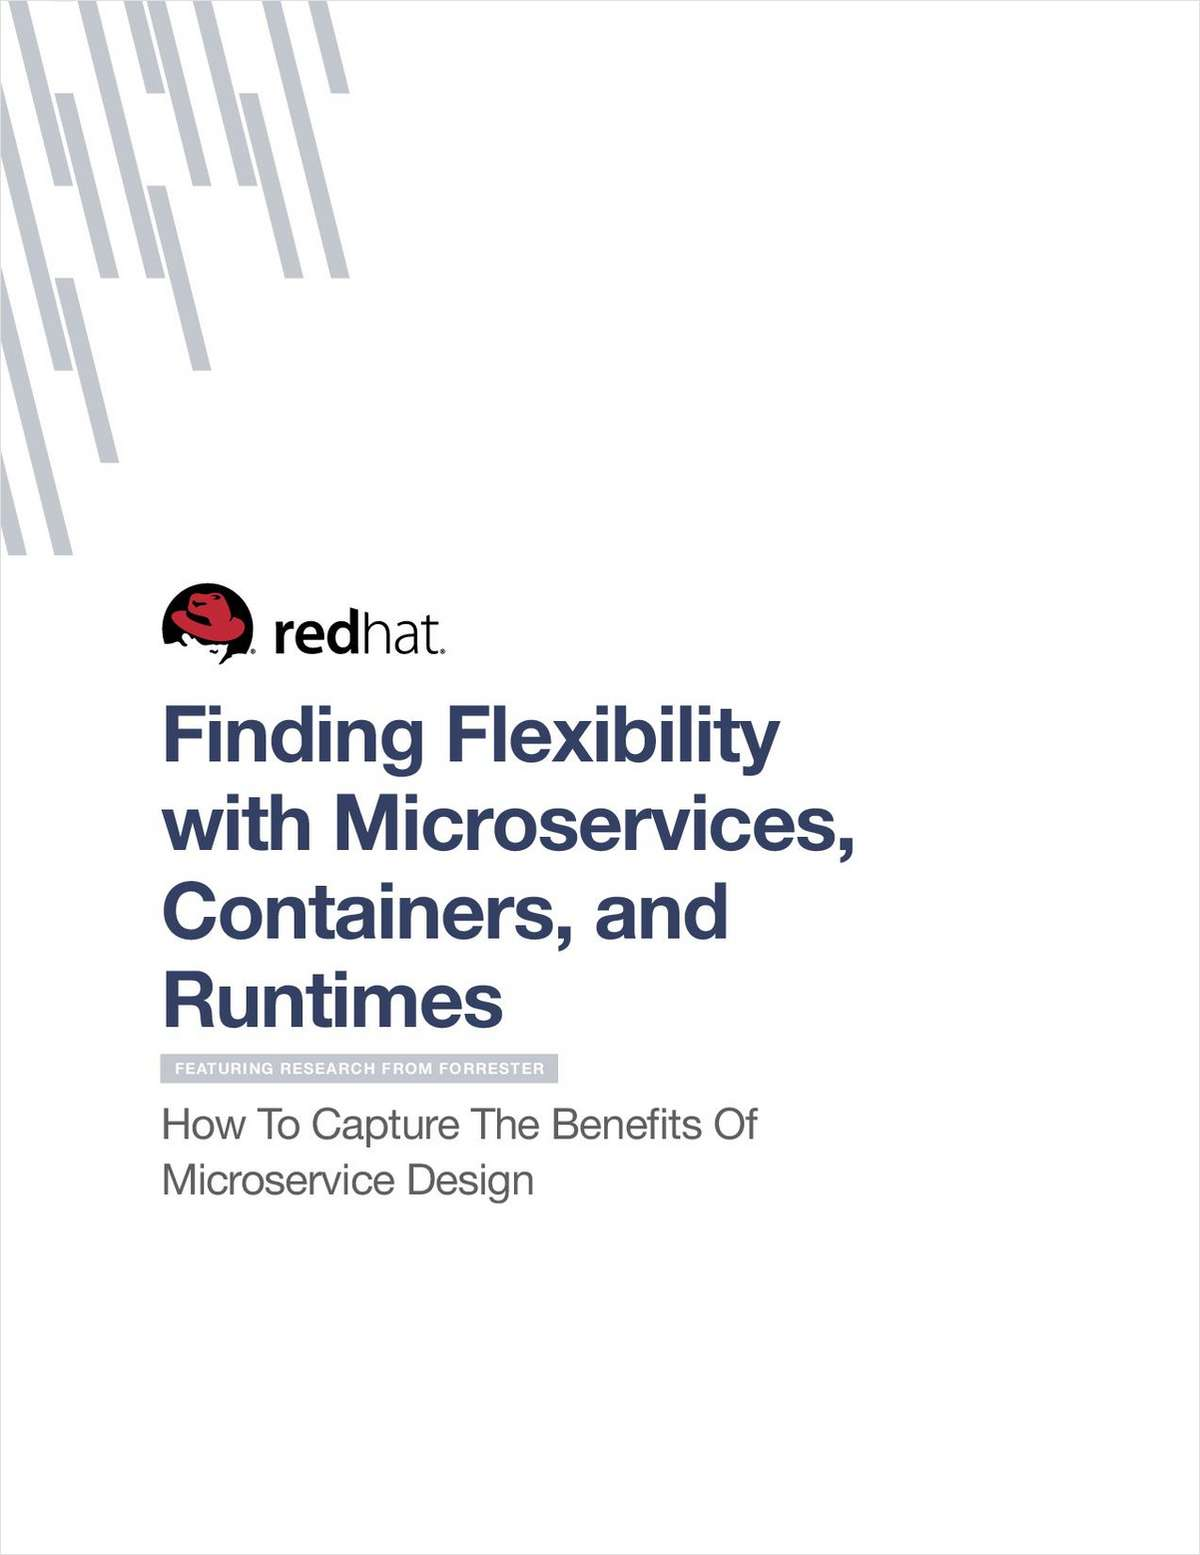 Finding Flexibility with Microservices, Containers, and Runtimes